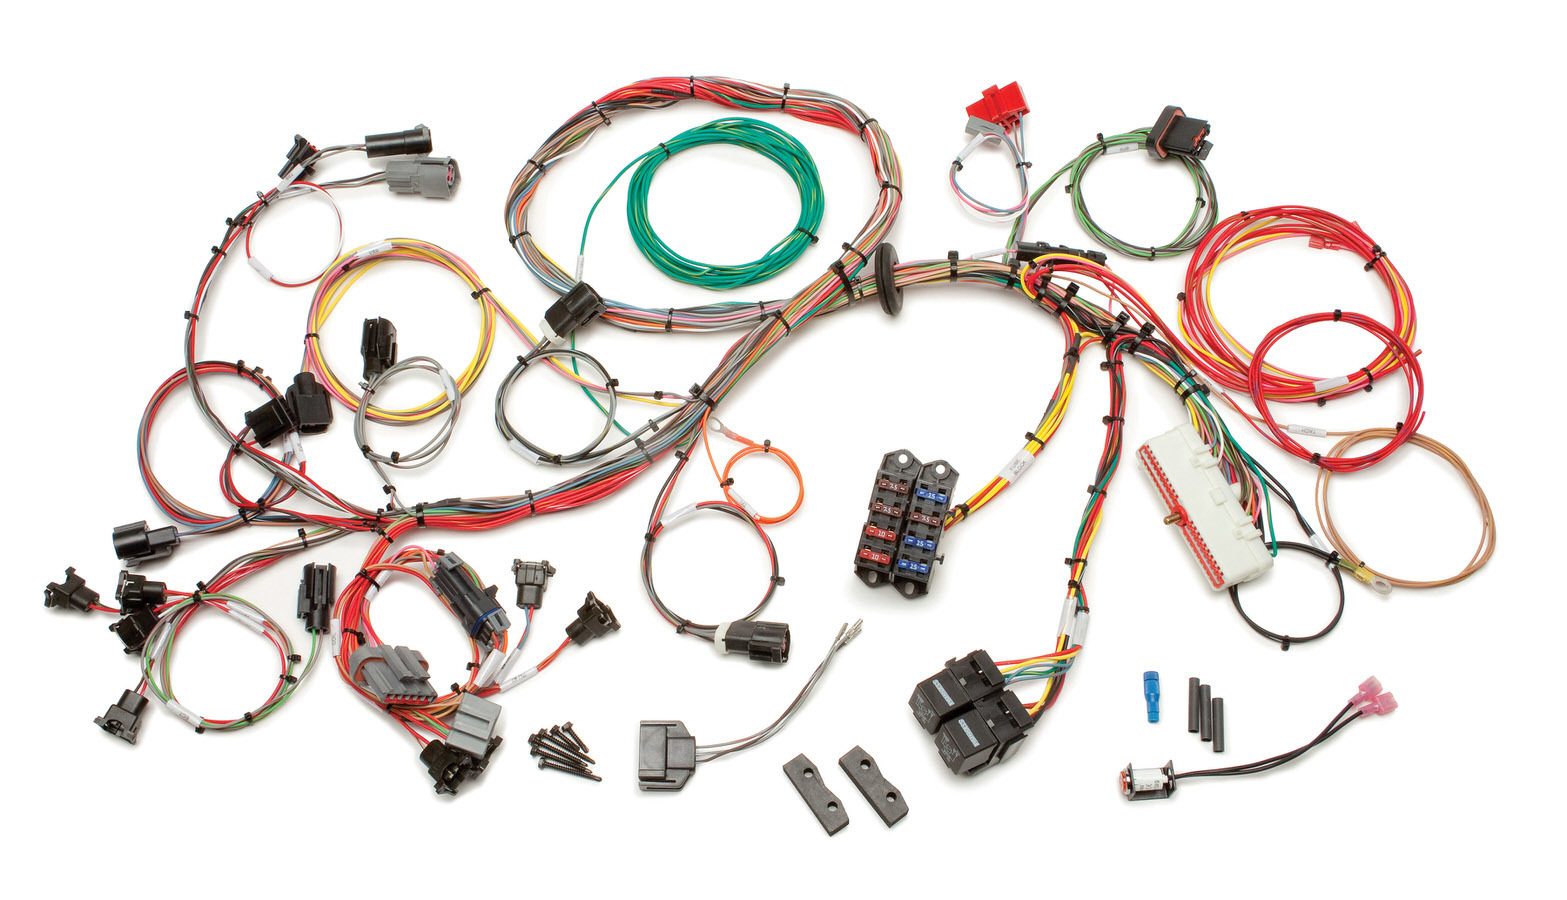 Painless Wiring 86-95 Ford 5.0L Mustang EFI Wiring Harness